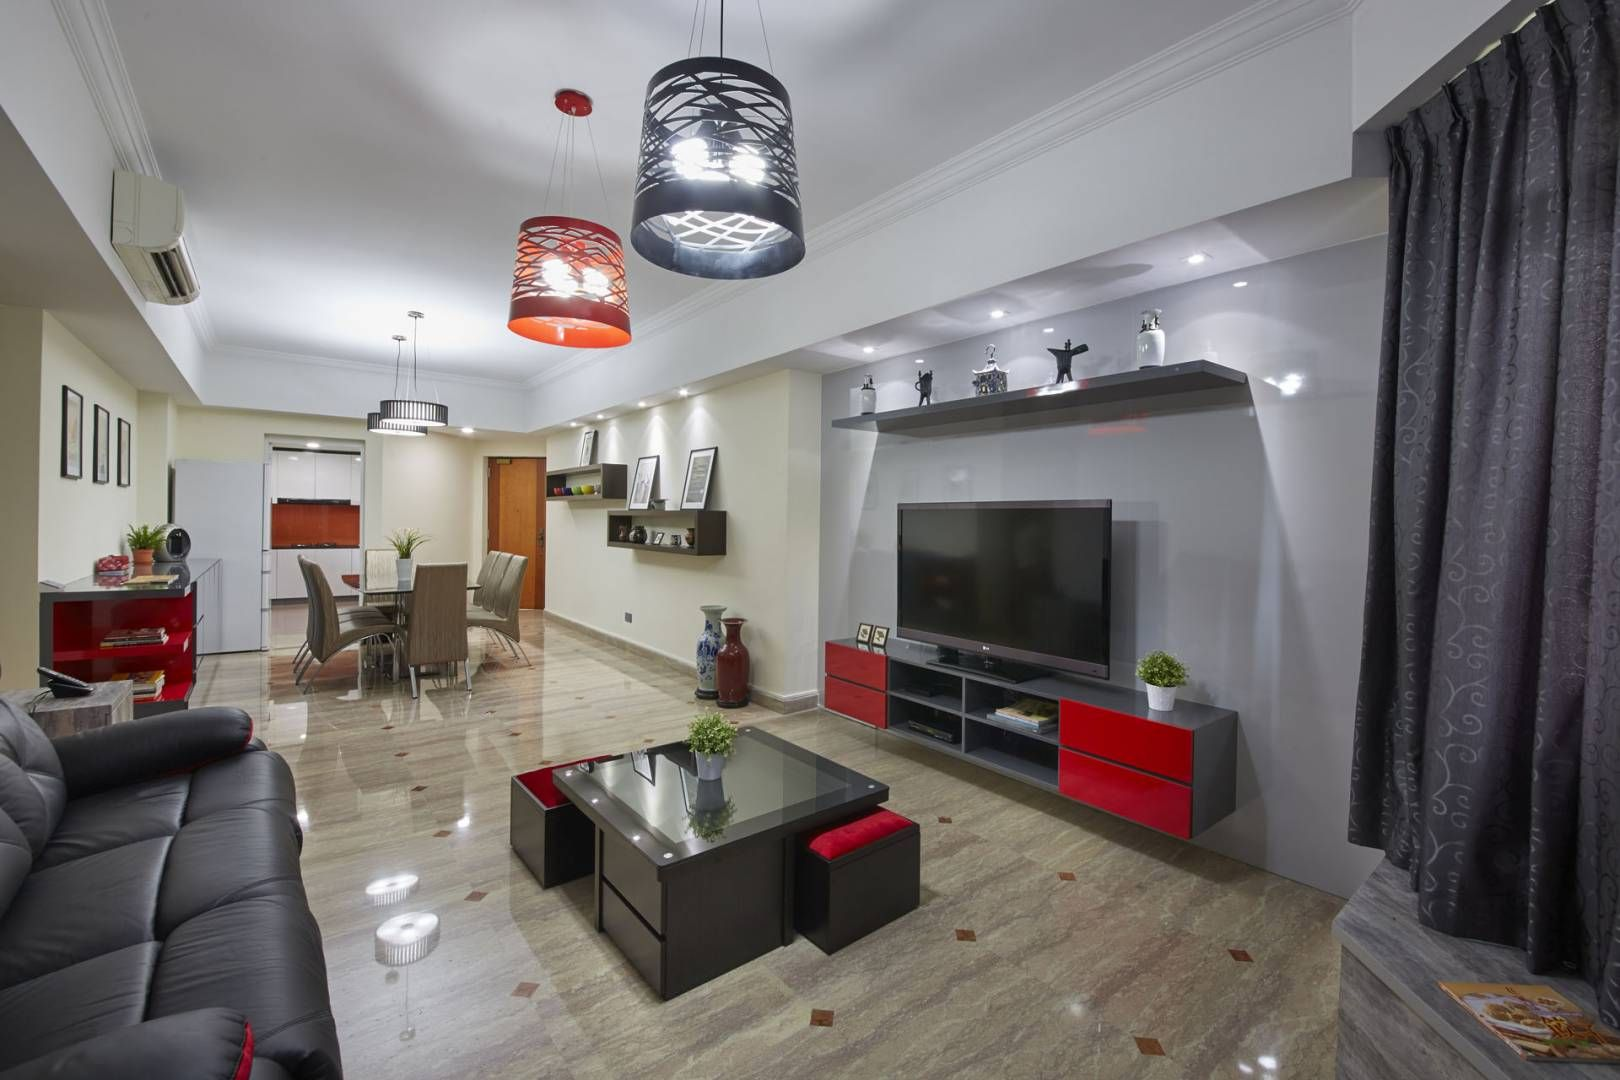 Ideal Design Interior Singapore Is Very Important And Can Influence The Way Custome Condominium Interior Design Condominium Interior Interior Design